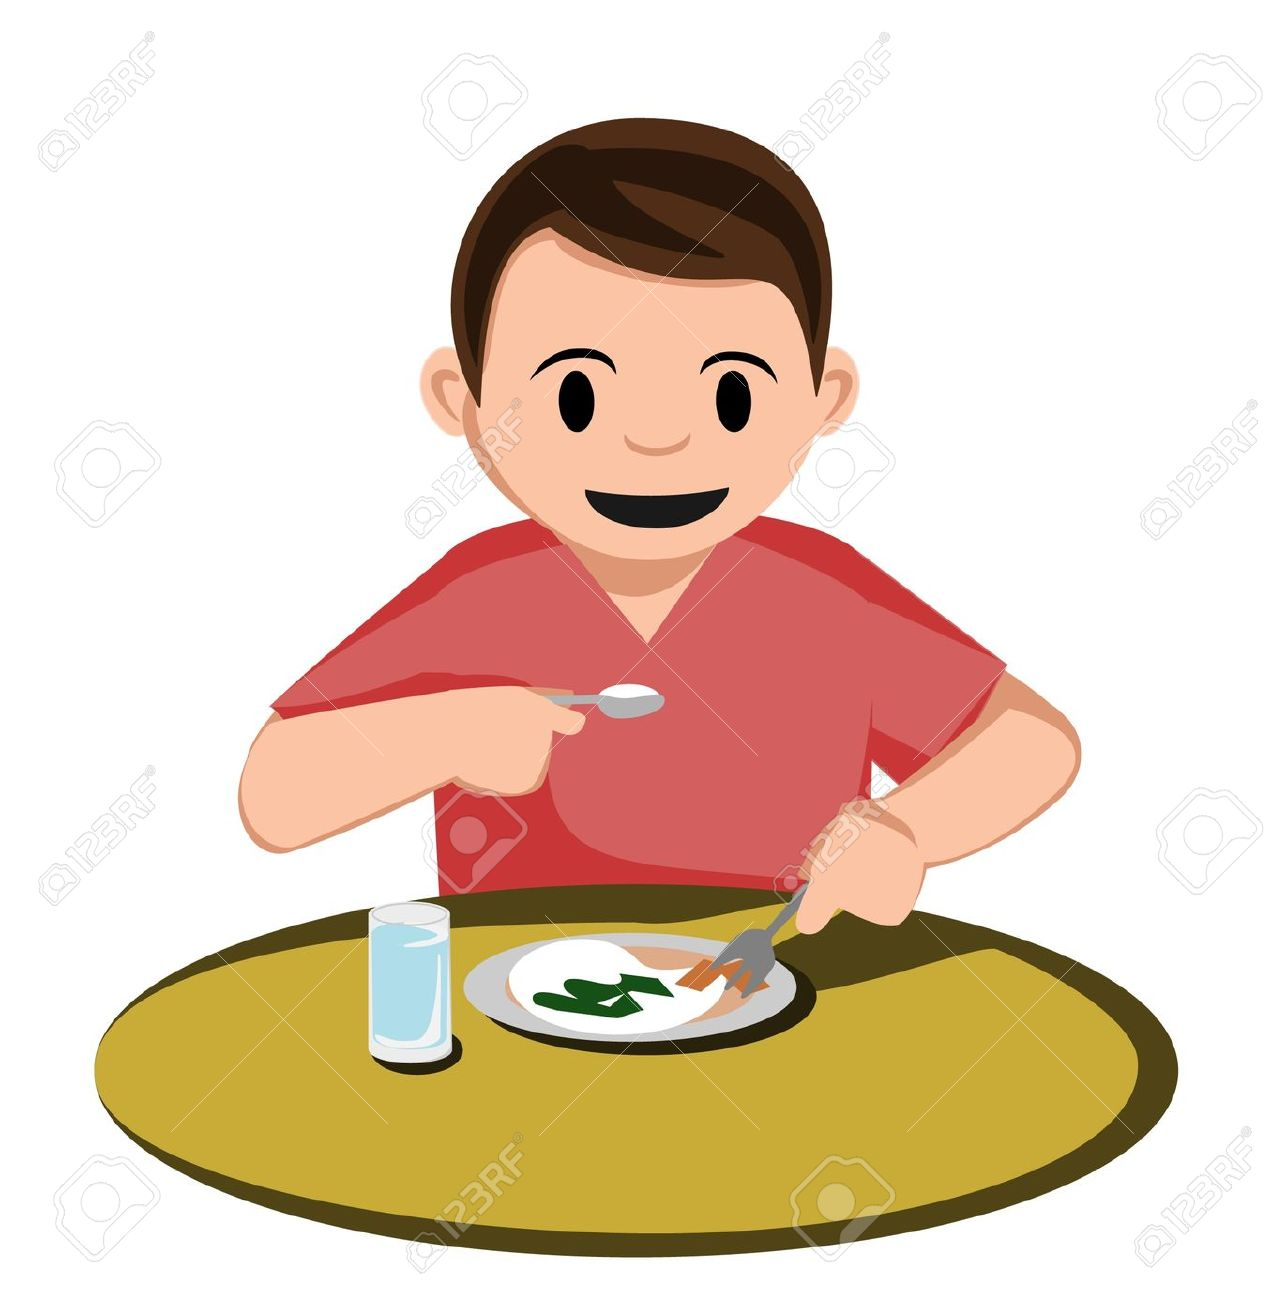 1271x1300 Snack Clipart Healthy Boy